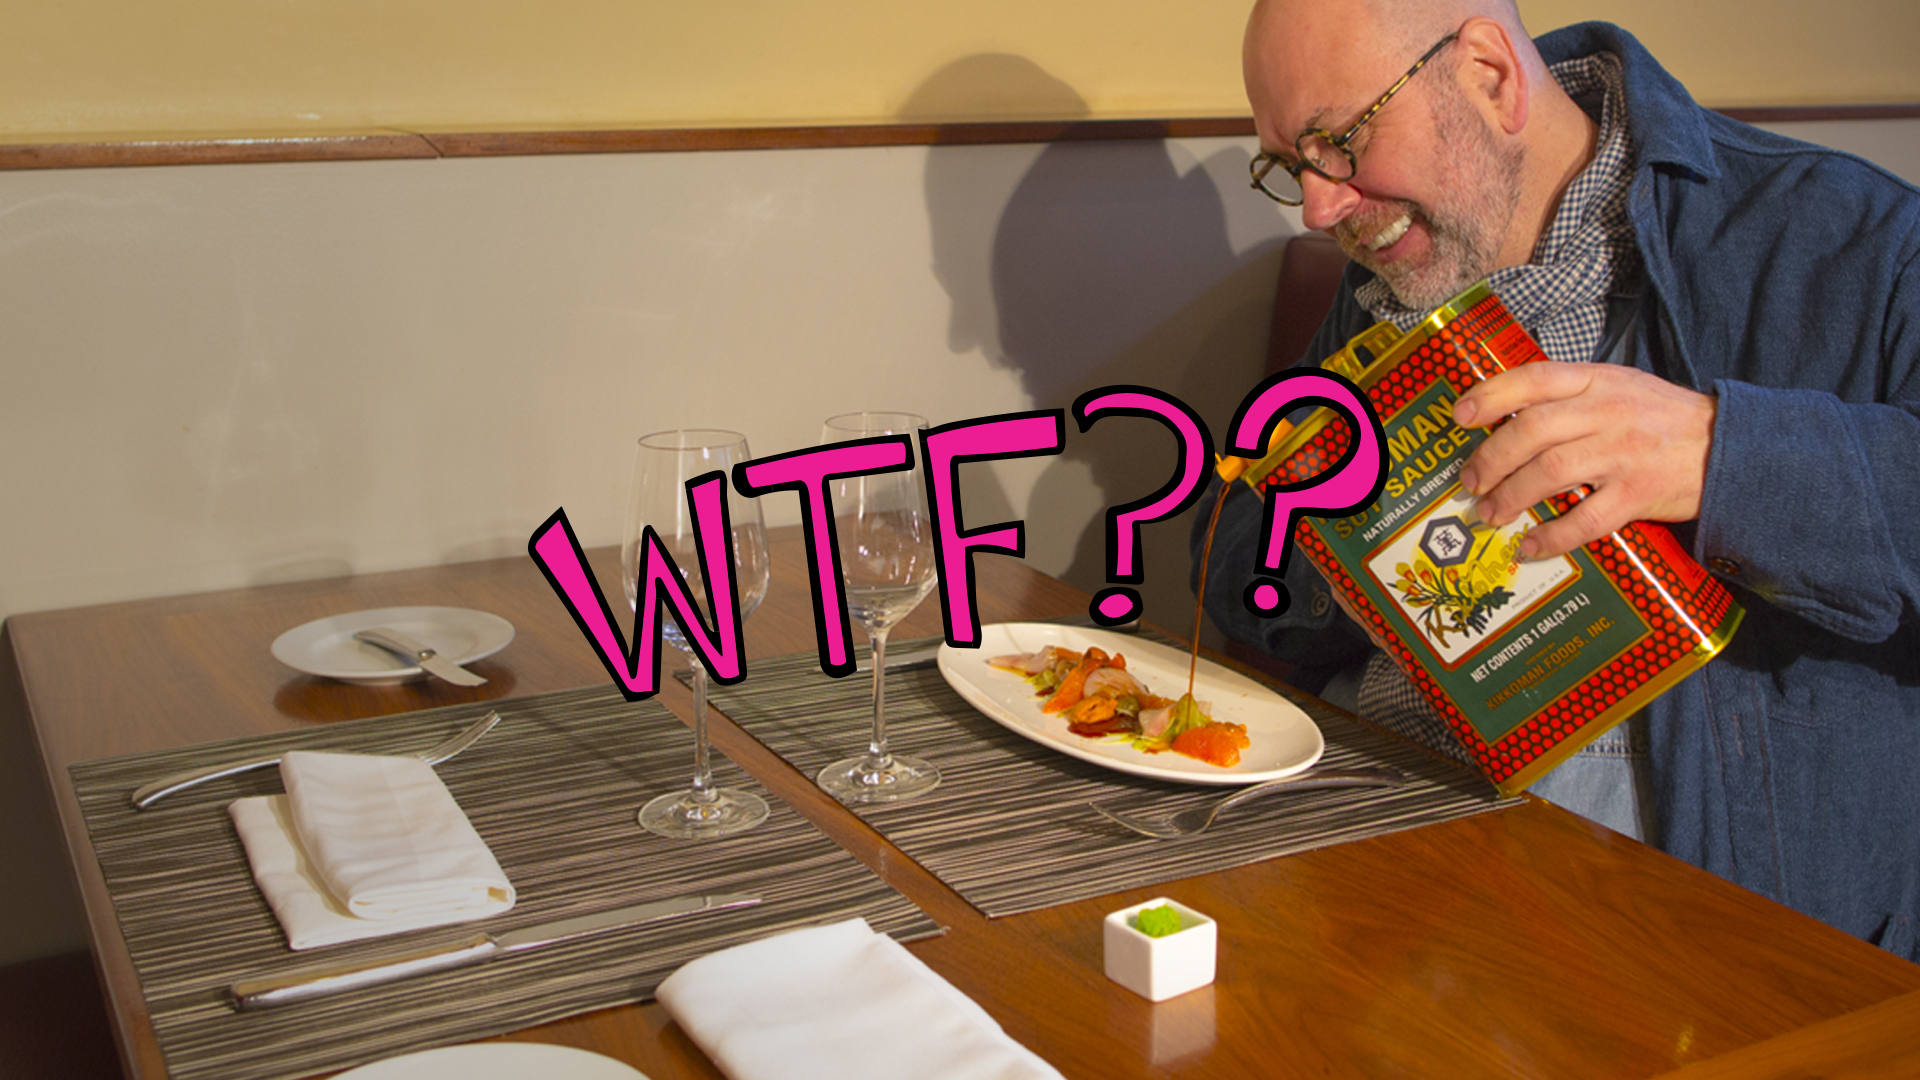 Don't Ask For a Condiment That Doesn't Belong to the Cuisine | Chef Stefan Terje | WTF Are You Doing?!